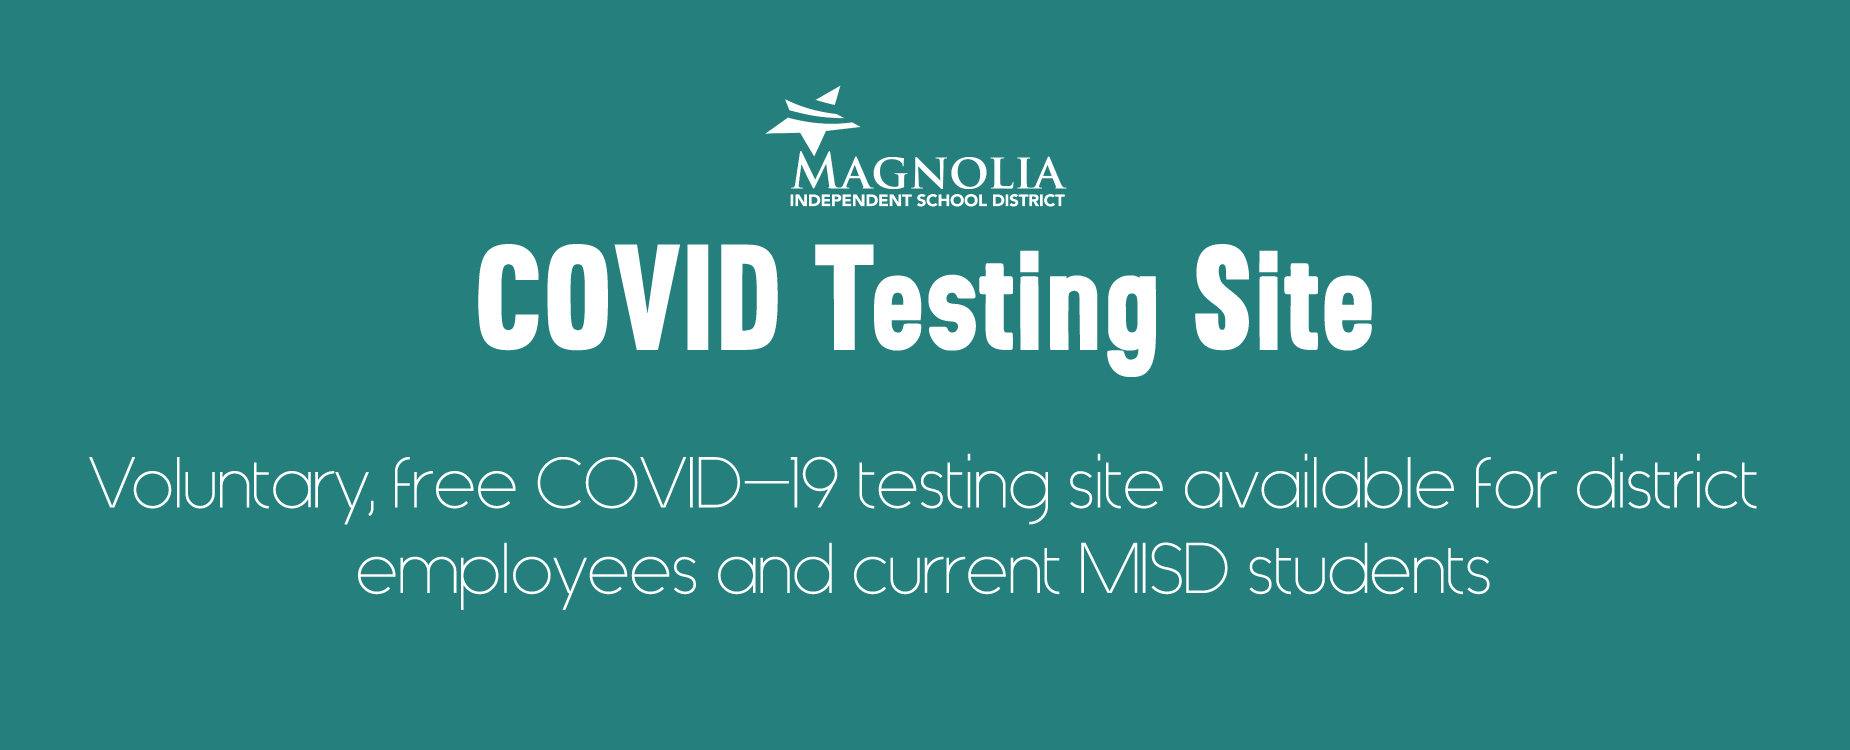 COVID Testing Site Information